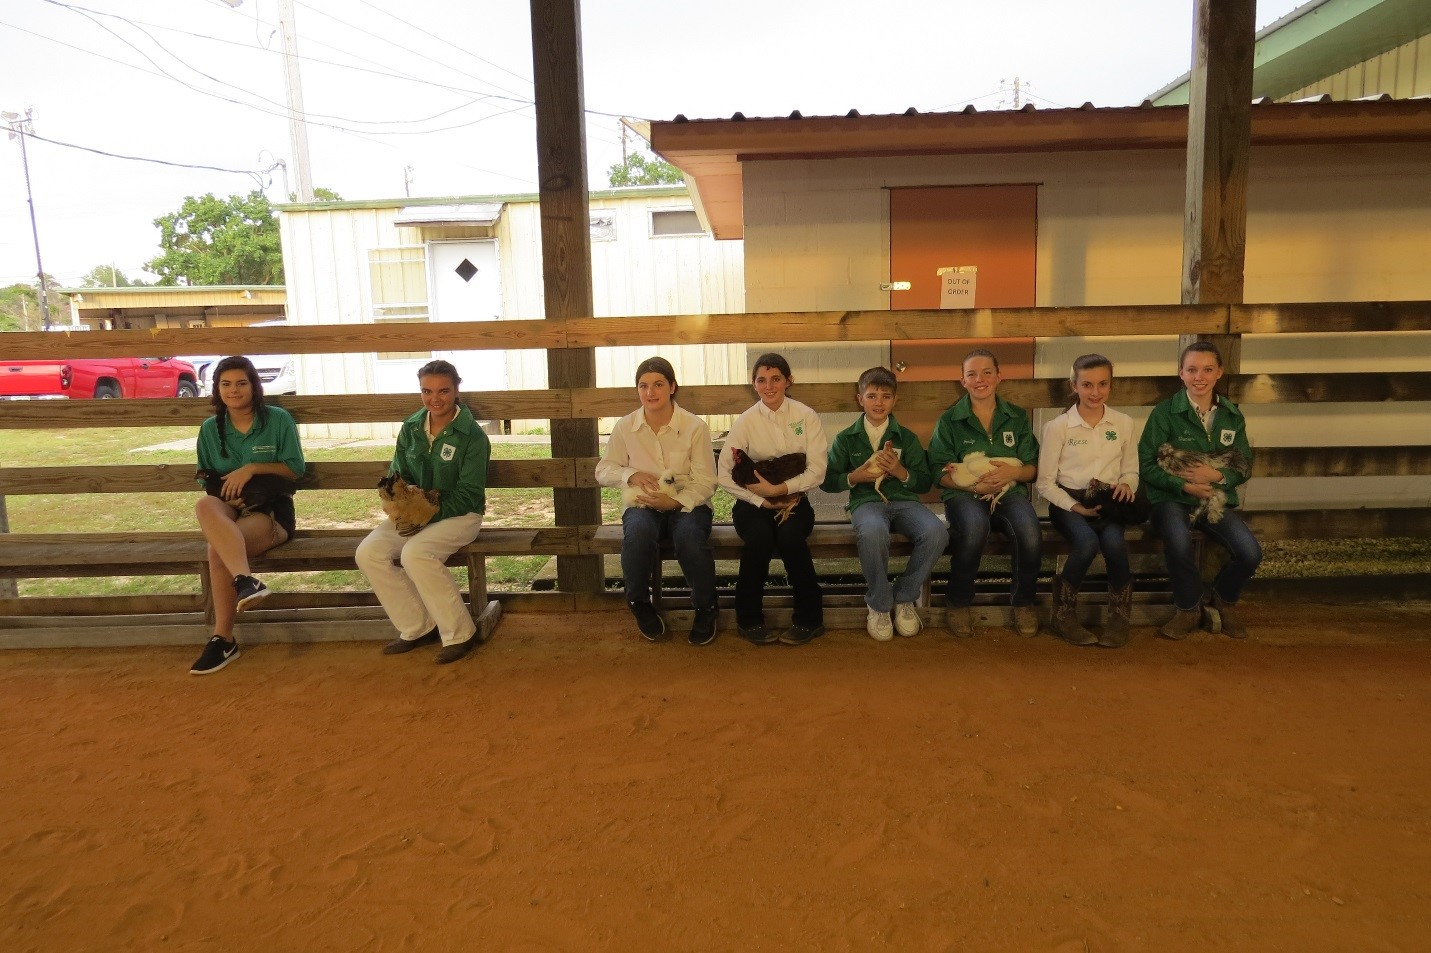 4-h poultry showmanship & fitting crawford county fair.